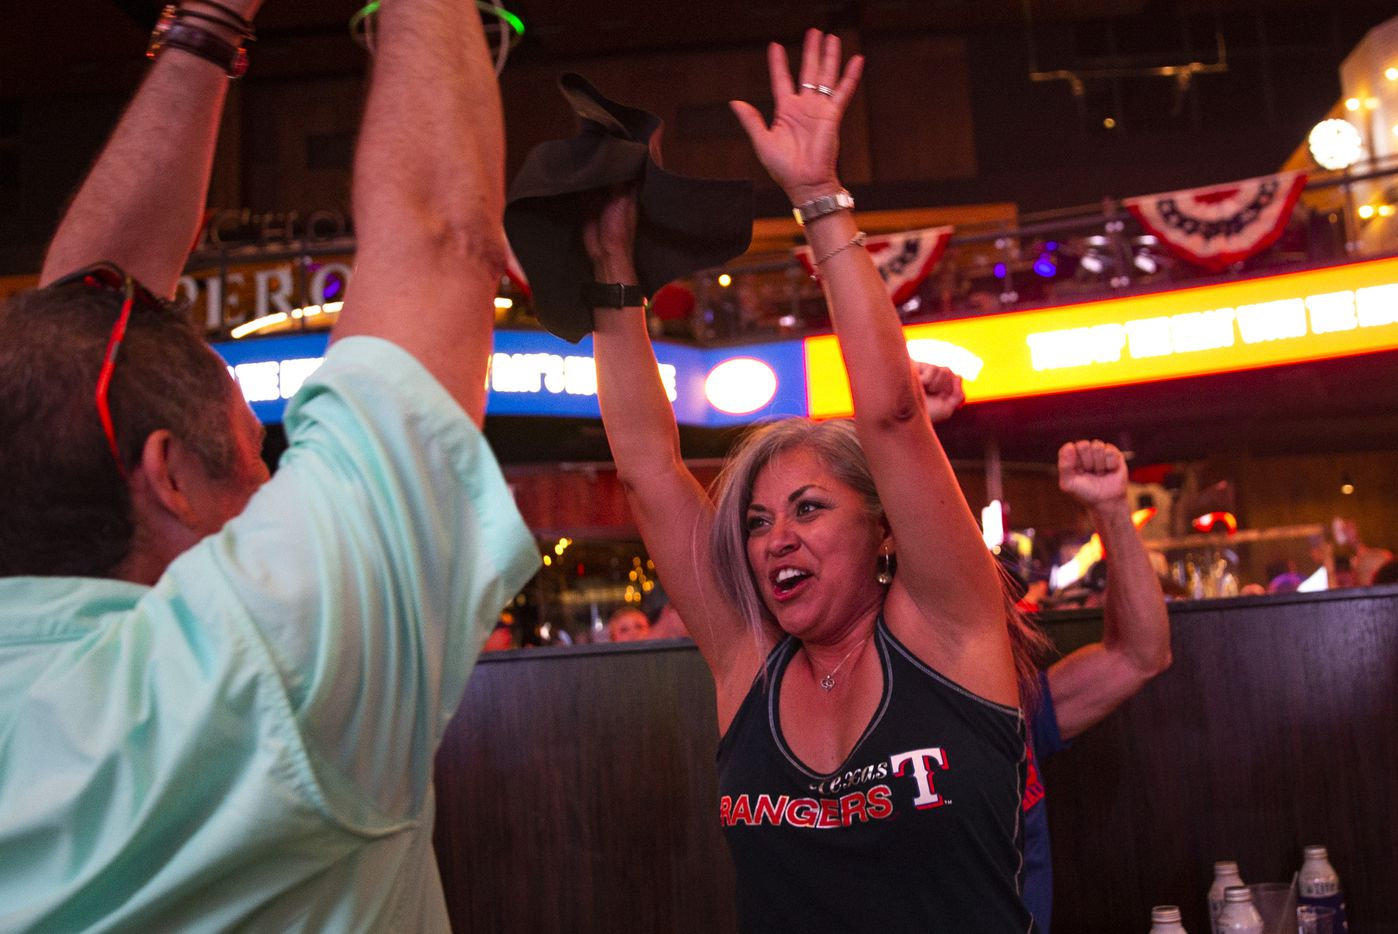 Claudia Borunda (right), from California, cheers with fans as the Texas Rangers win their opening day game of their season at Texas Live! in Arlington, Texas, on Friday, July 24, 2020. The Rangers played the Colorado Rockies at the new Globe Life Field stadium, but fans had to watch on televised screens outside due to the ongoing pandemic. (Lynda M. Gonzalez/The Dallas Morning News)